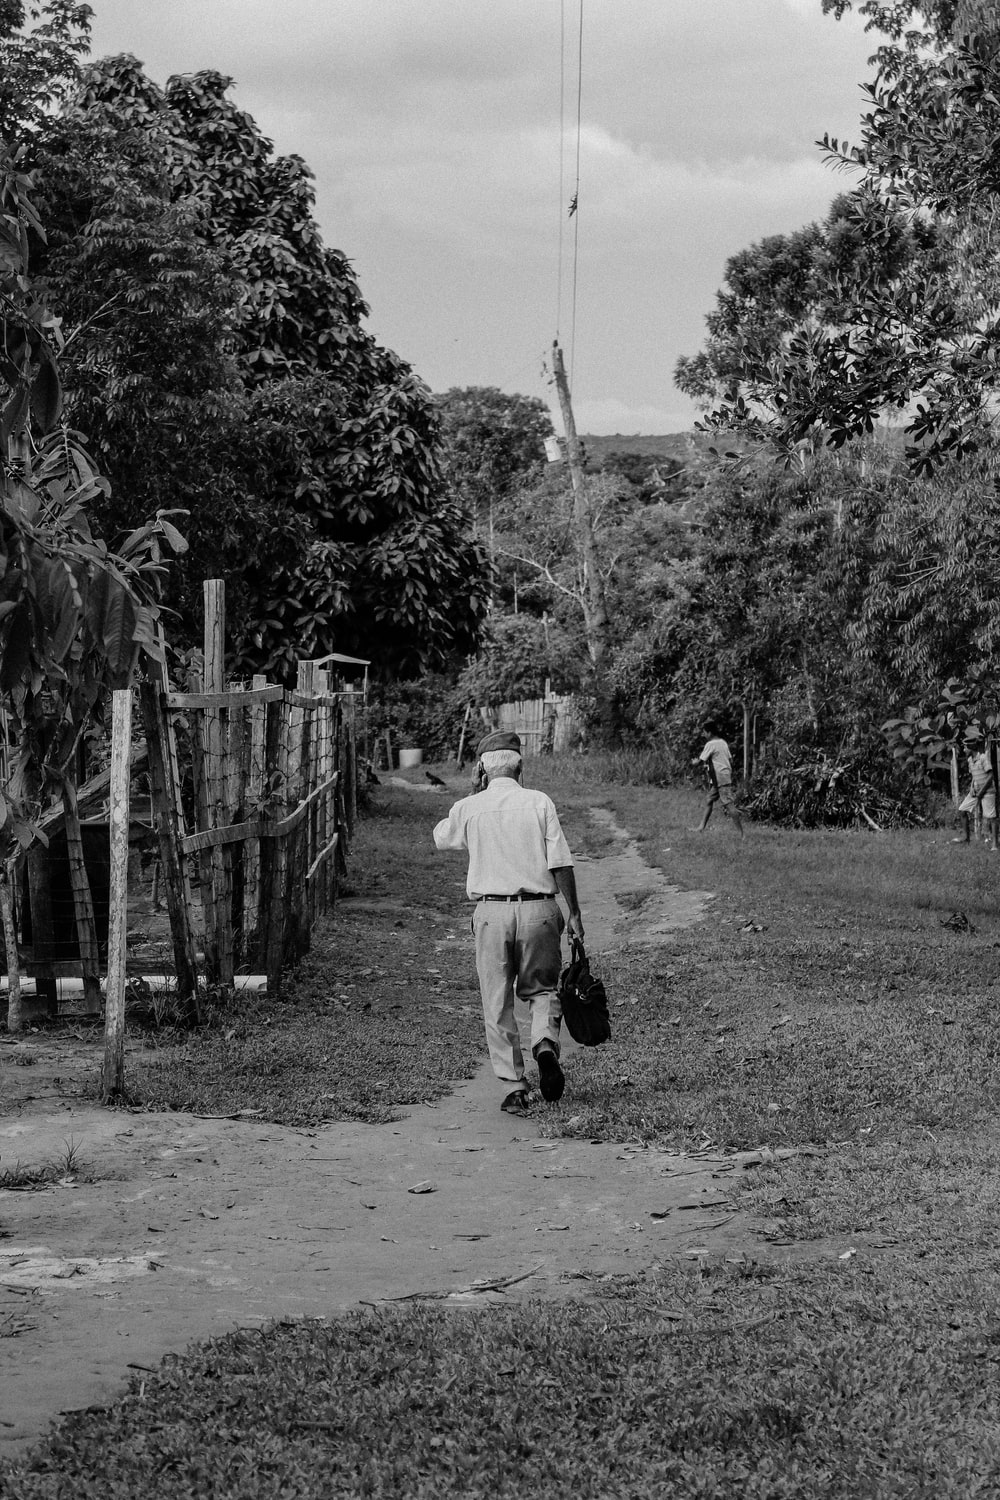 man walking beside fence near trees